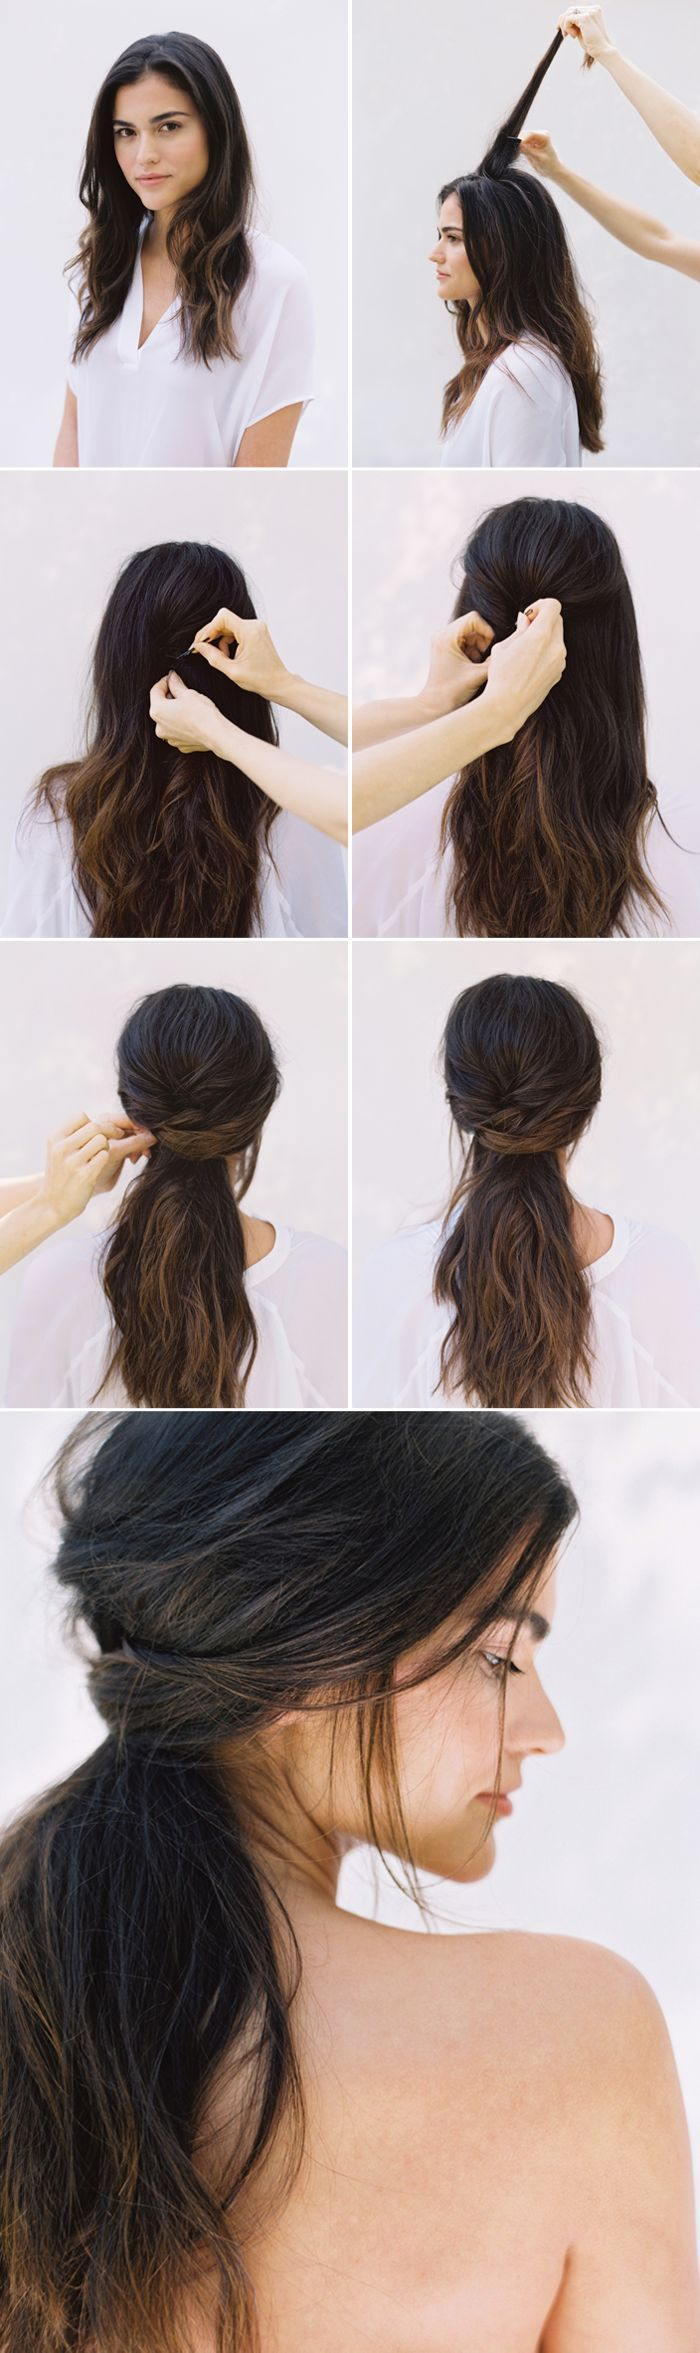 DIY Half Up Half Down Wedding Hairstyle